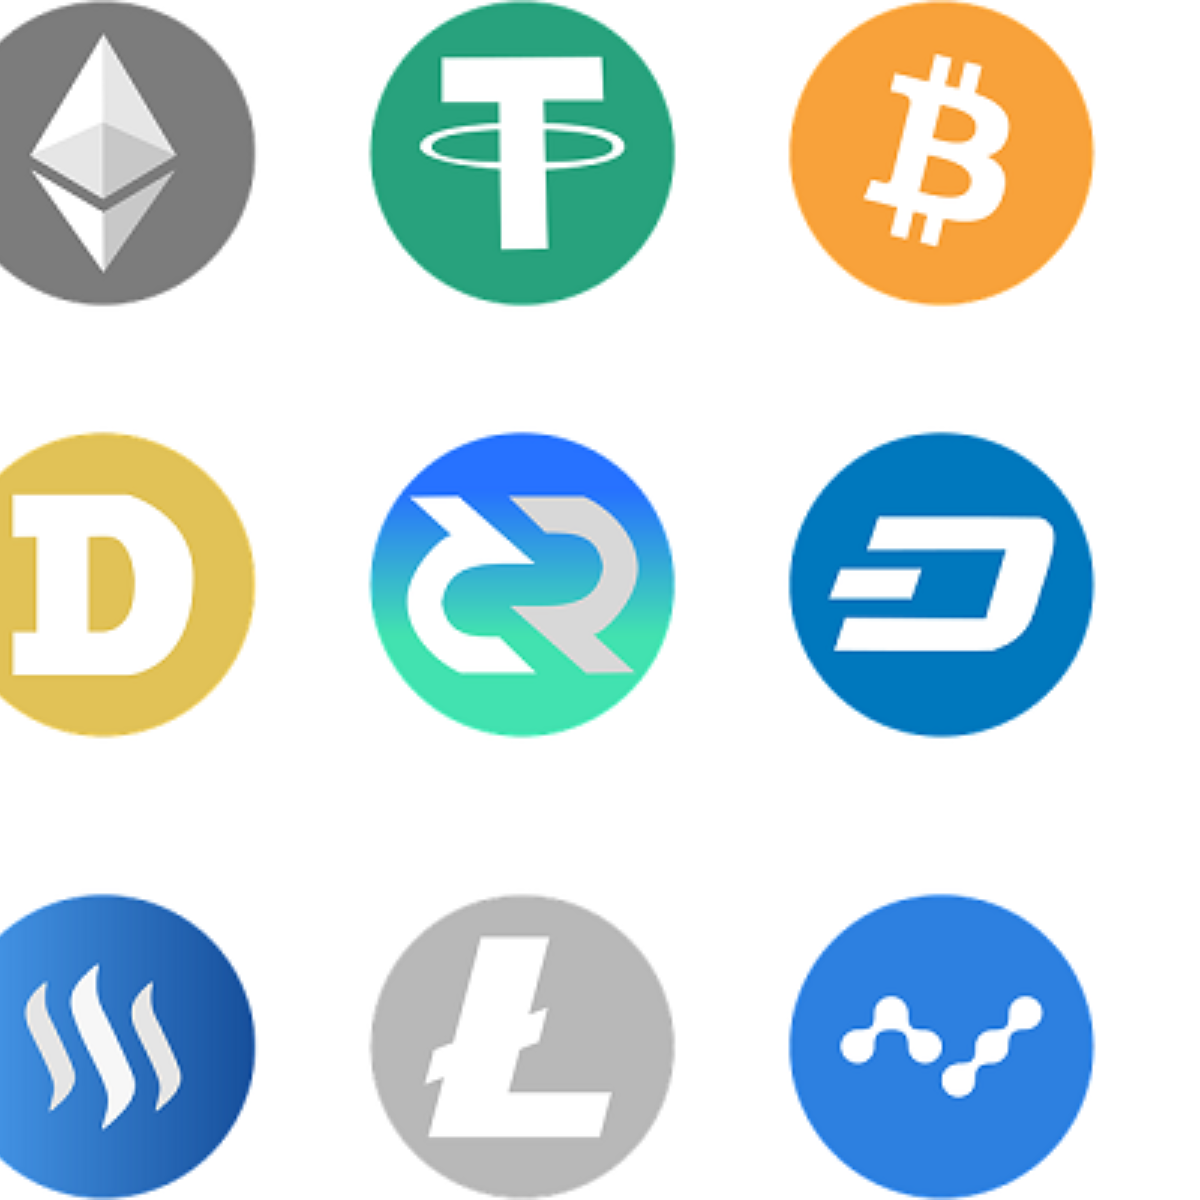 Coinbase Is Listing For Us100 Billion On Nasdaq But You Might Be Better Buying Bitcoin Instead